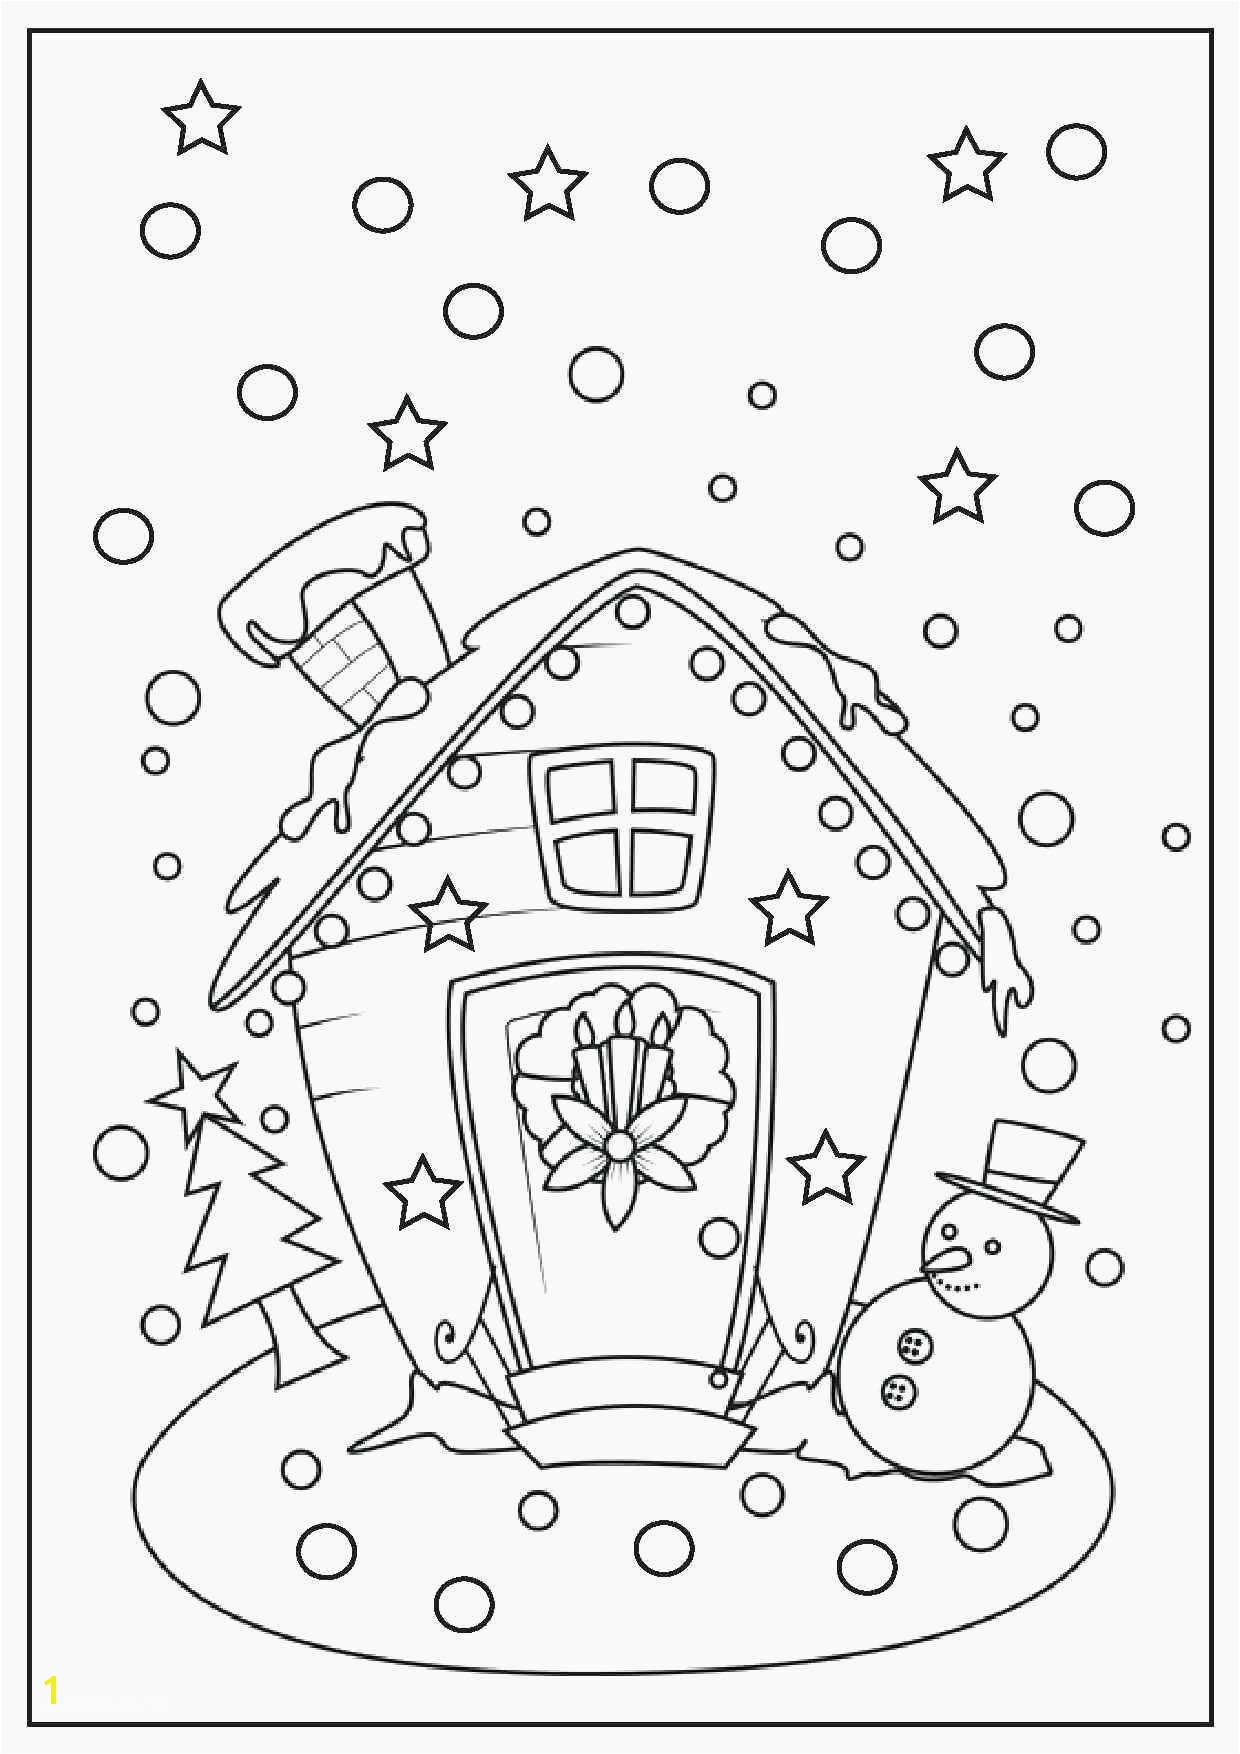 Delightful Outdoor Christmas Tree and Outdoor Christmas Tree Coloring Page Printable Coloring Pages